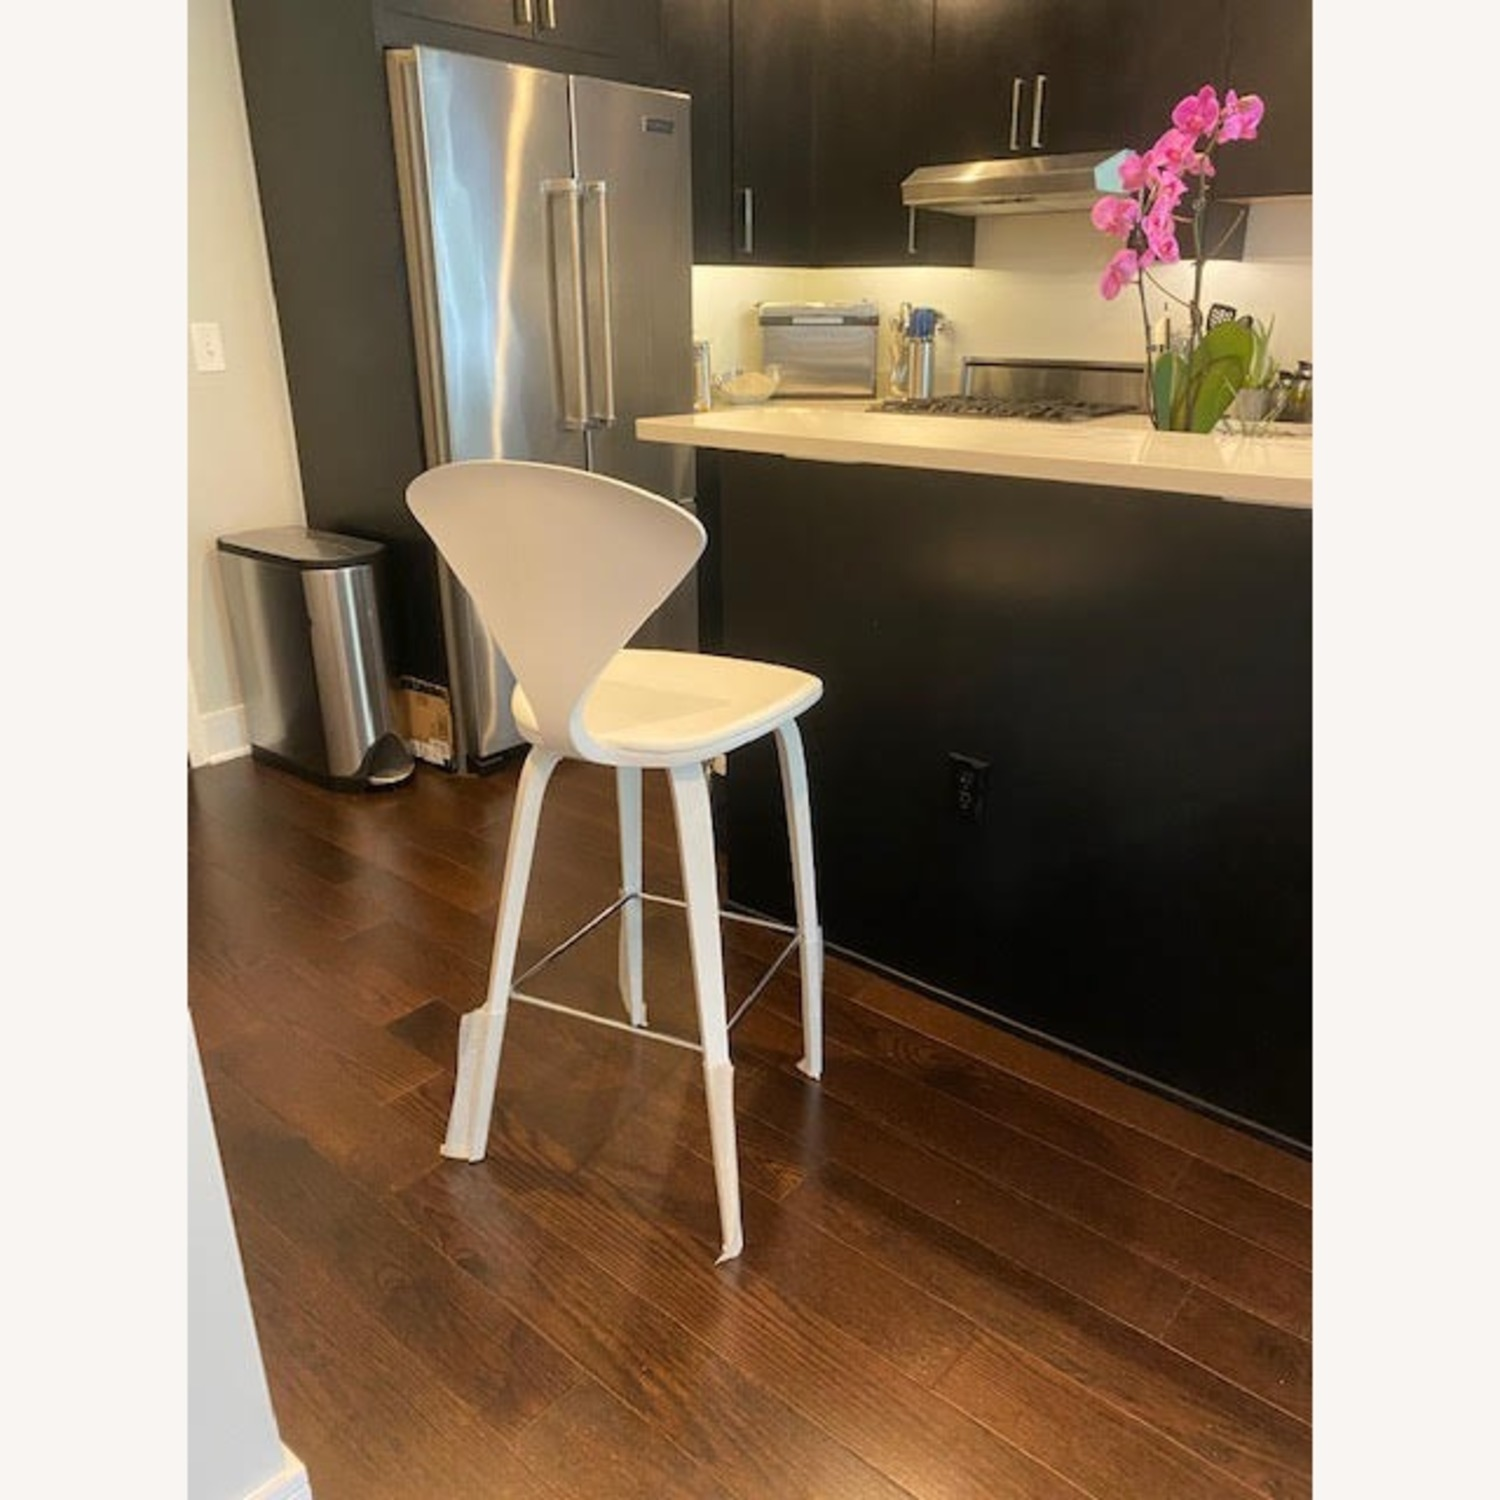 Cherner Stool with Leather Seat Pad - image-1